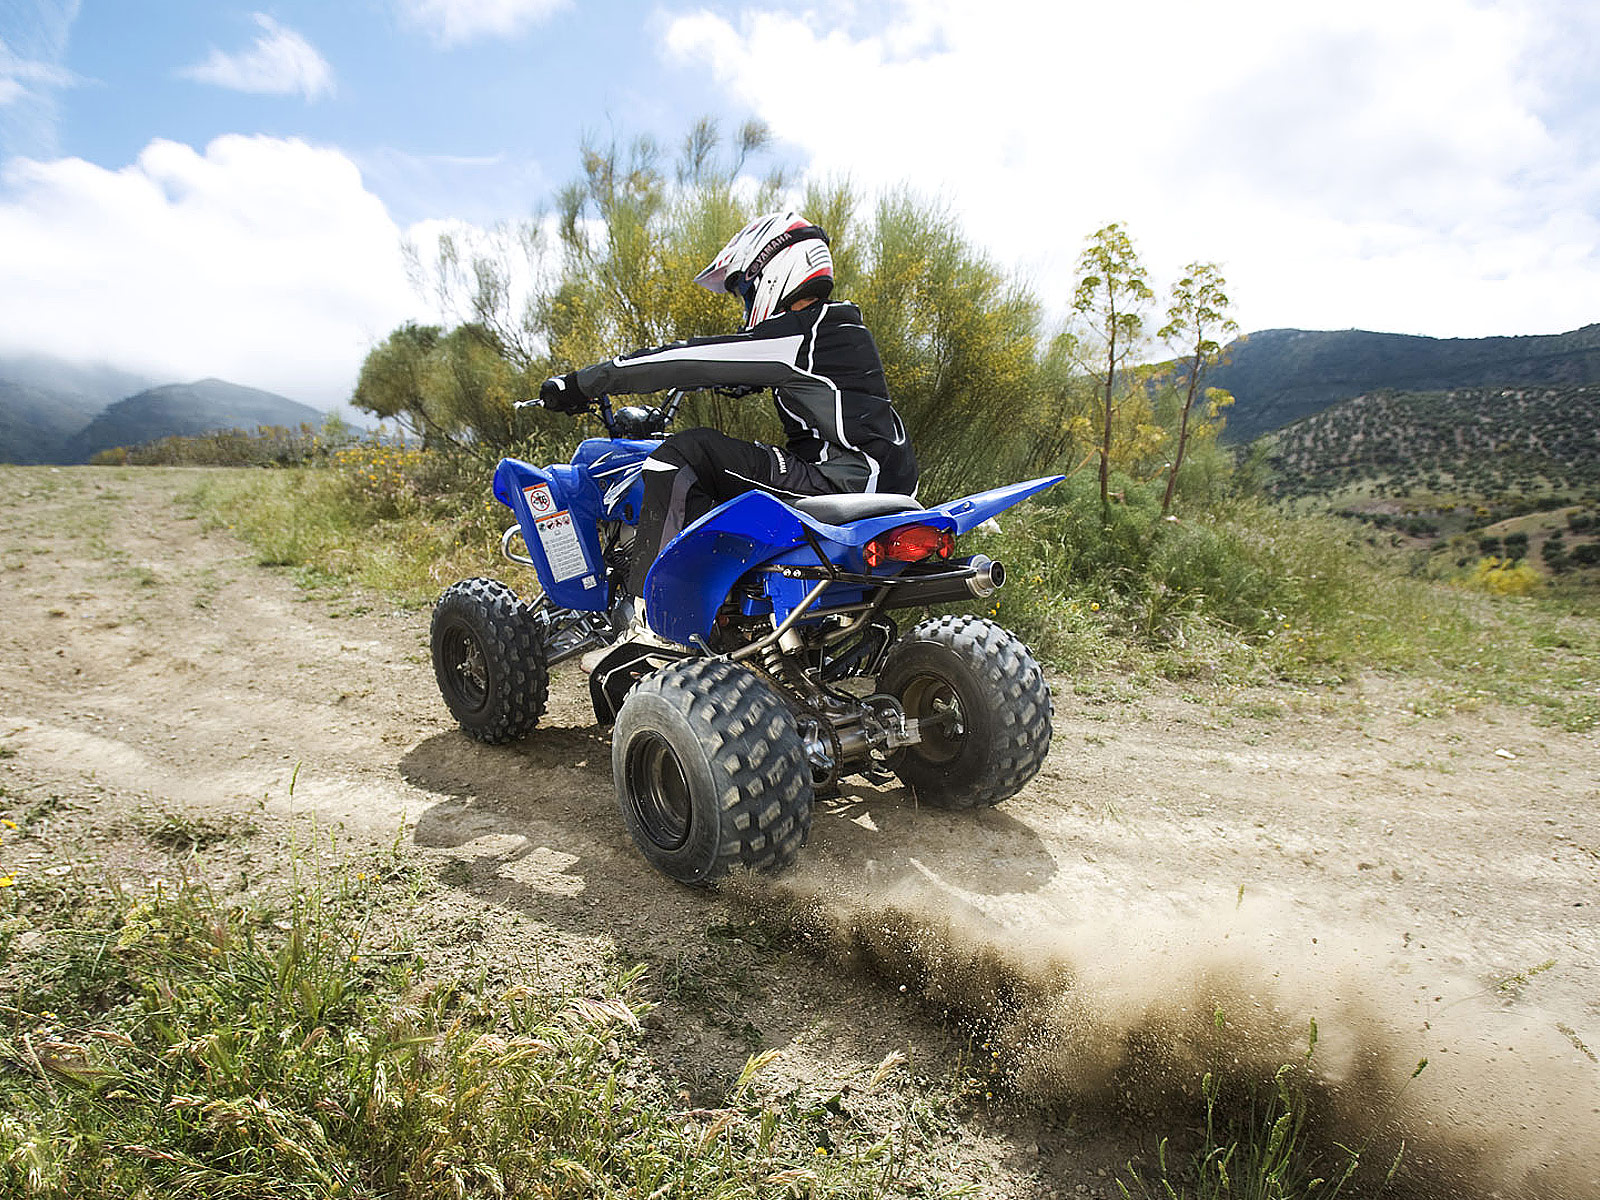 2009 yamaha raptor 350 atv pictures, review and specifications2009 yamaha raptor 350 click thumbnail to download (size 1600 x 1200 pixels) \u2022 based